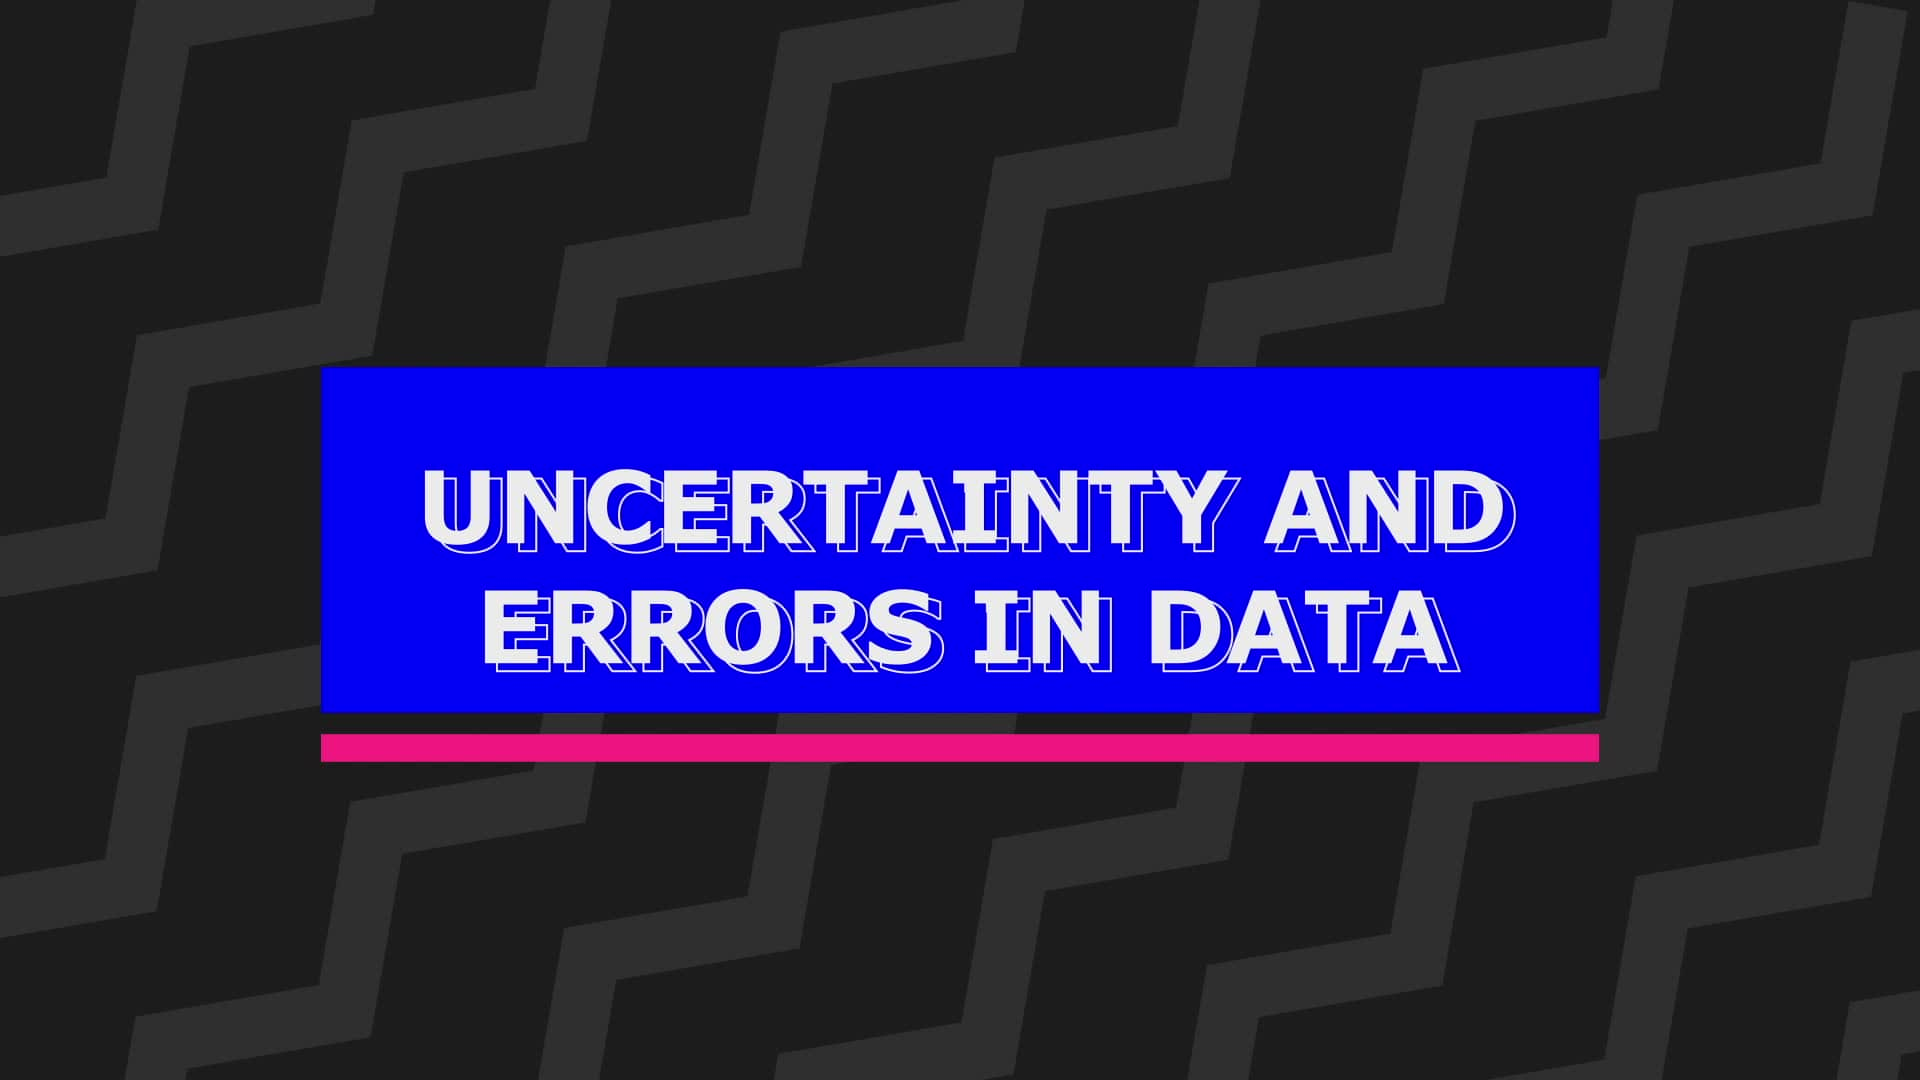 Introduction to uncertainty and errors in data